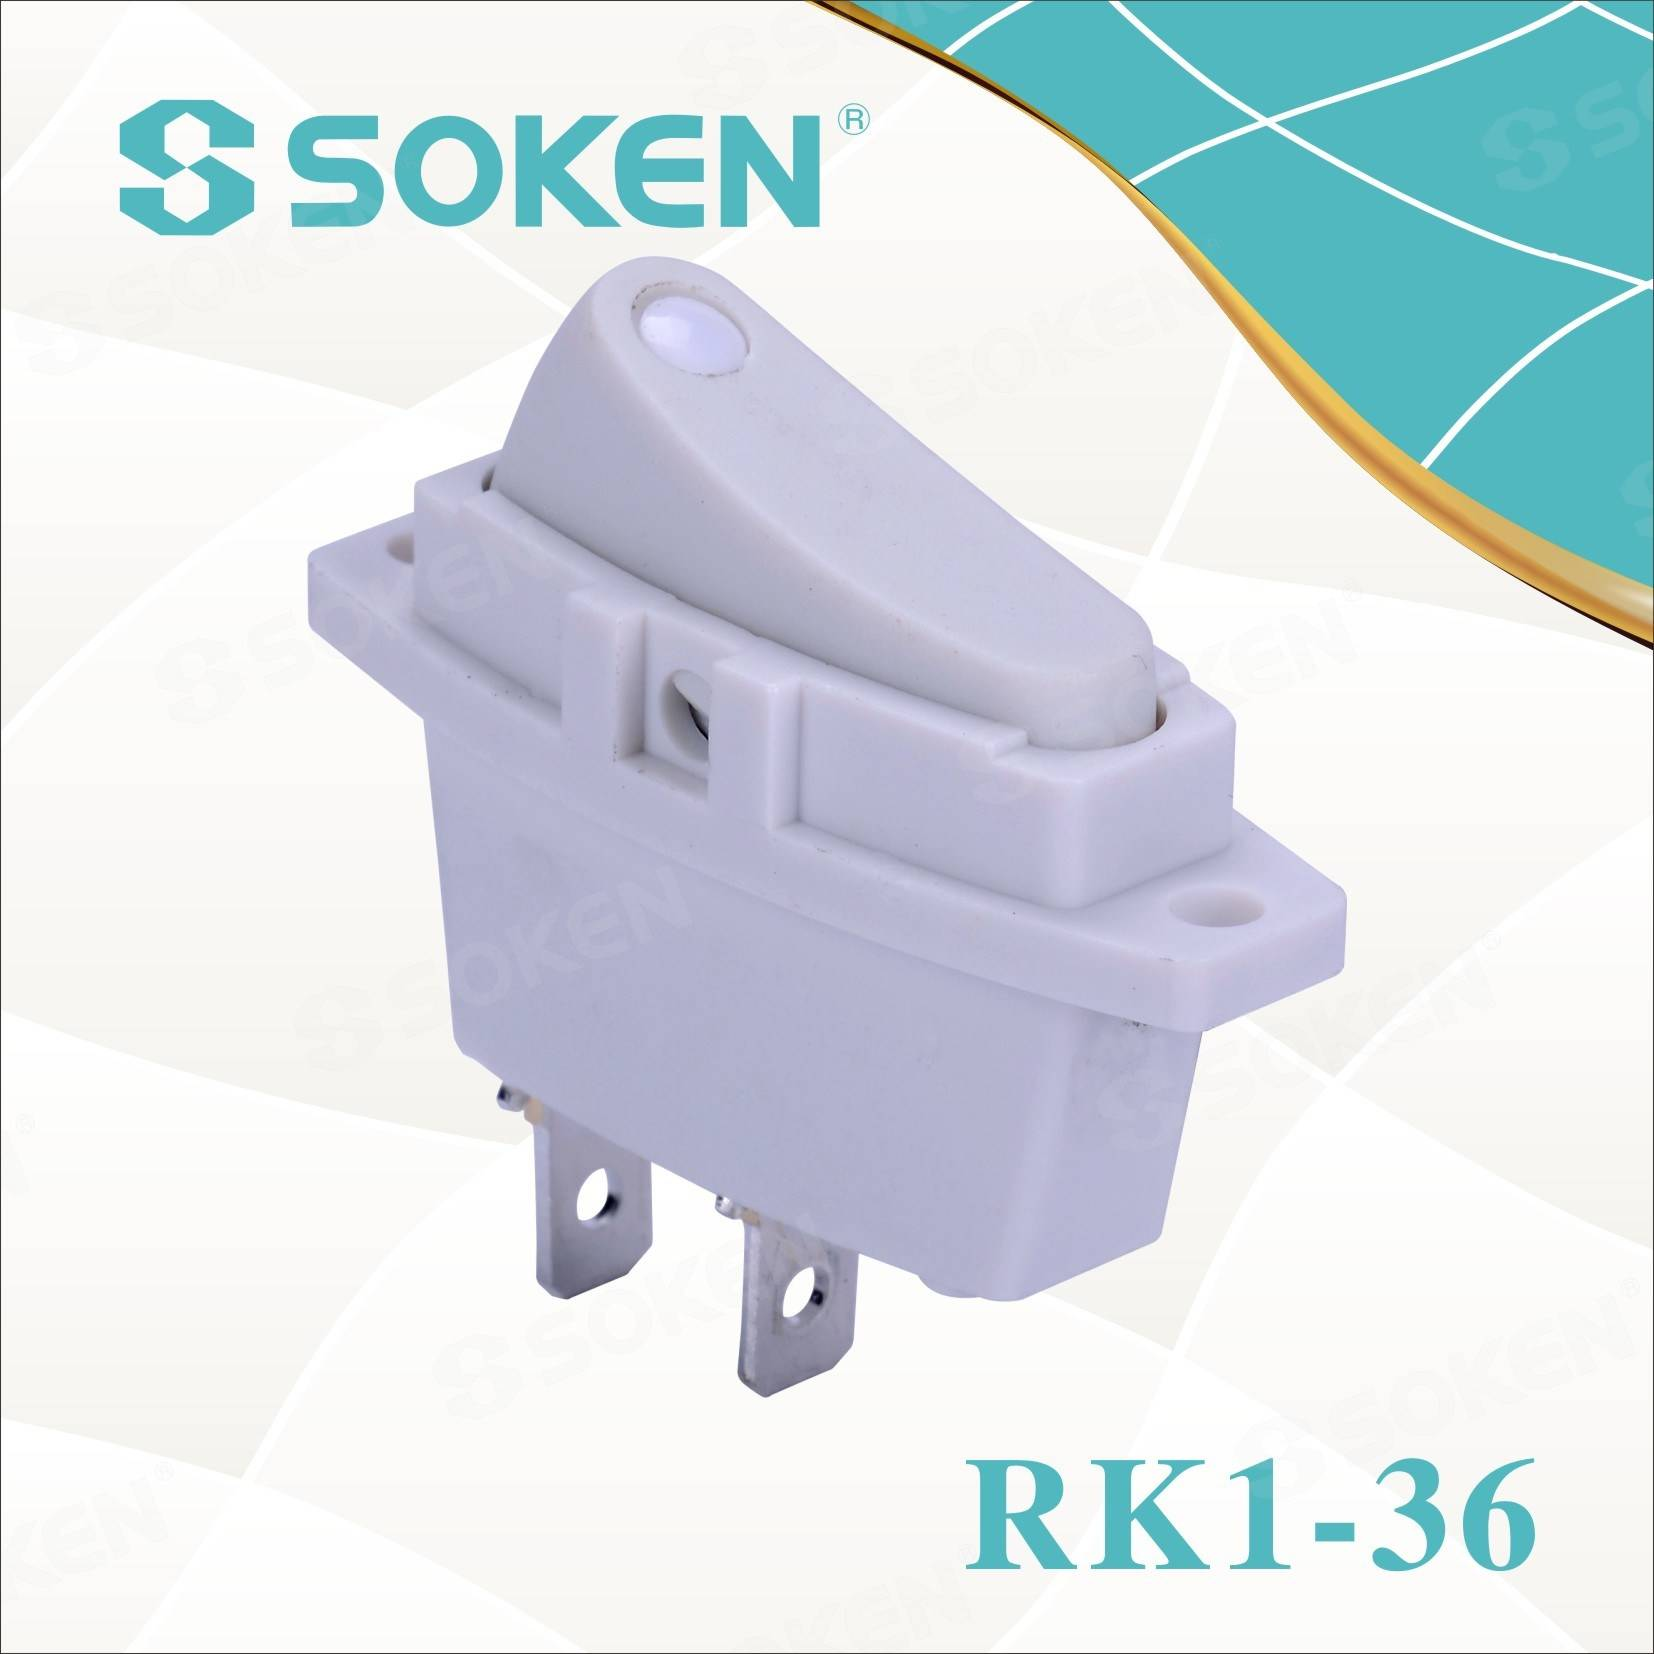 Soken Rk1-36 1X1 li Switch Rocker off